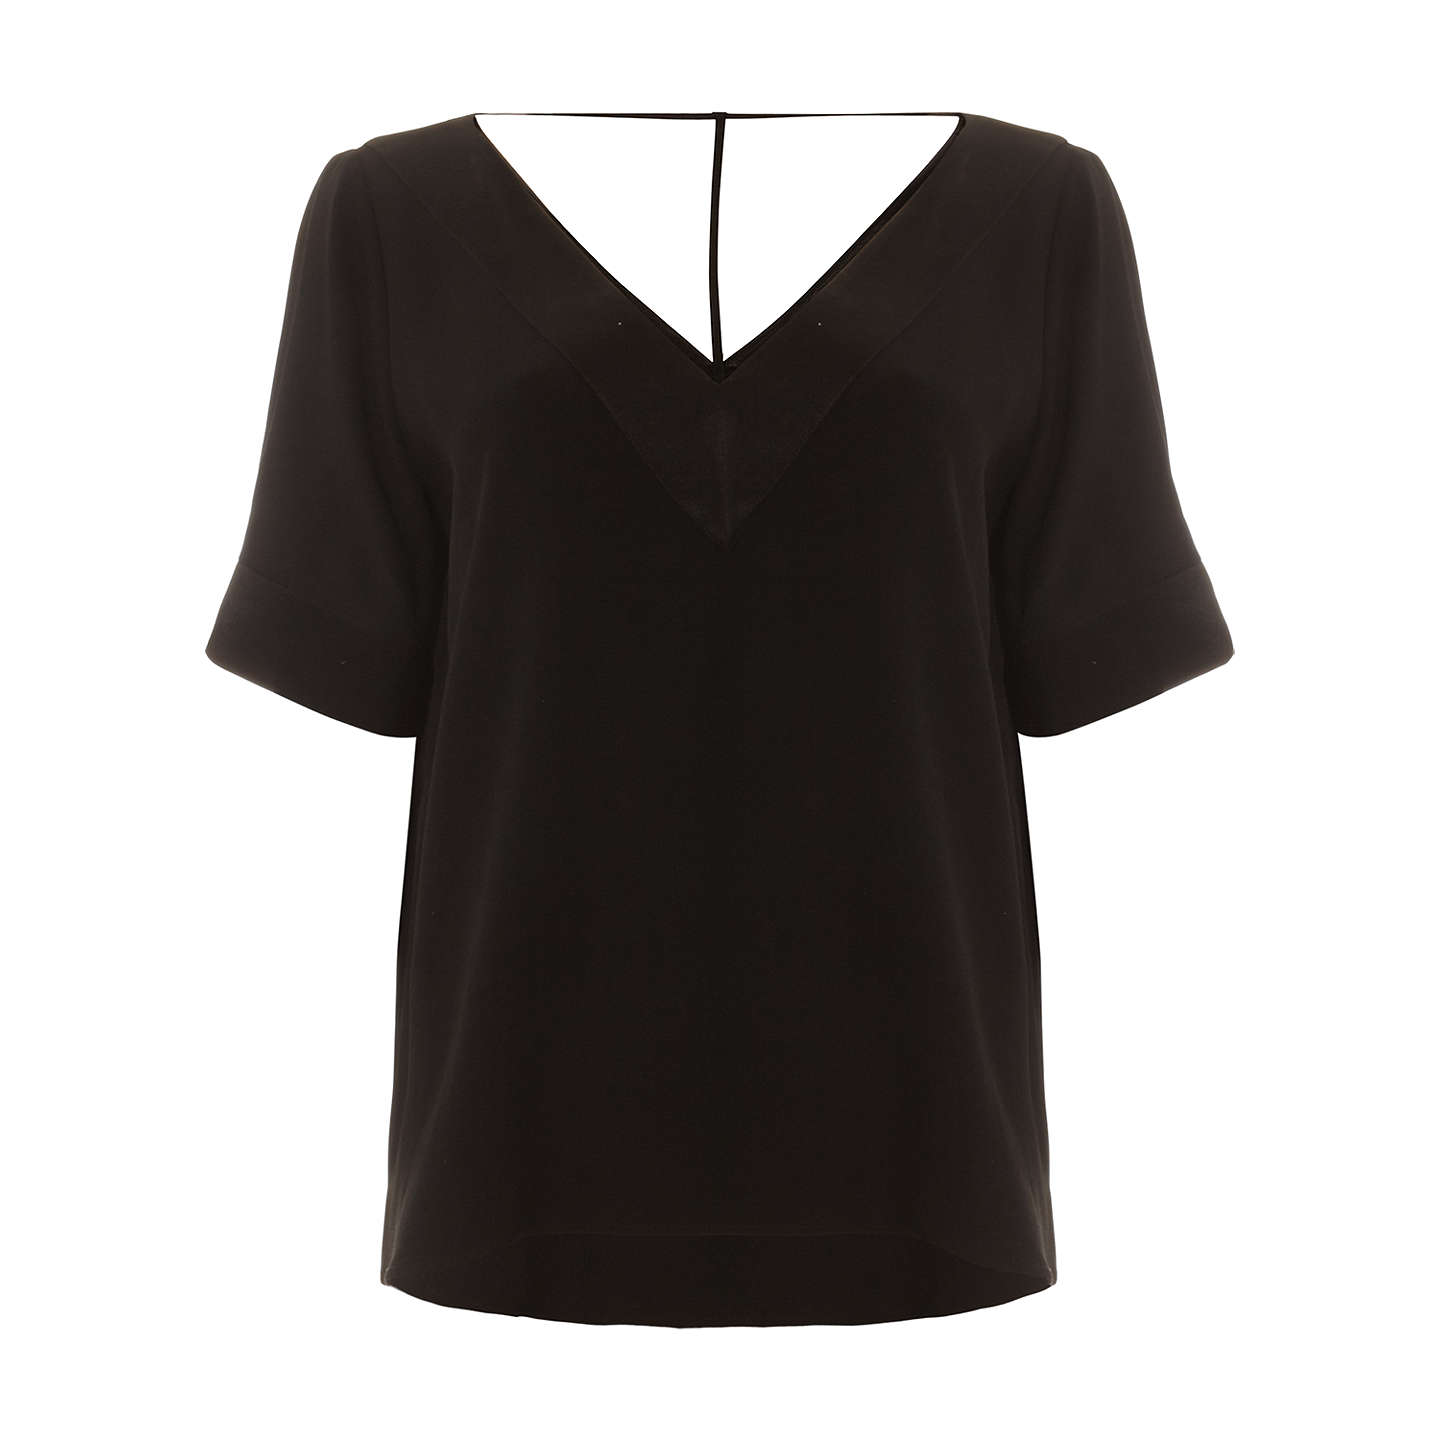 BuyPhase Eight Fiona V-Neck Blouse, Black, 10 Online at johnlewis.com